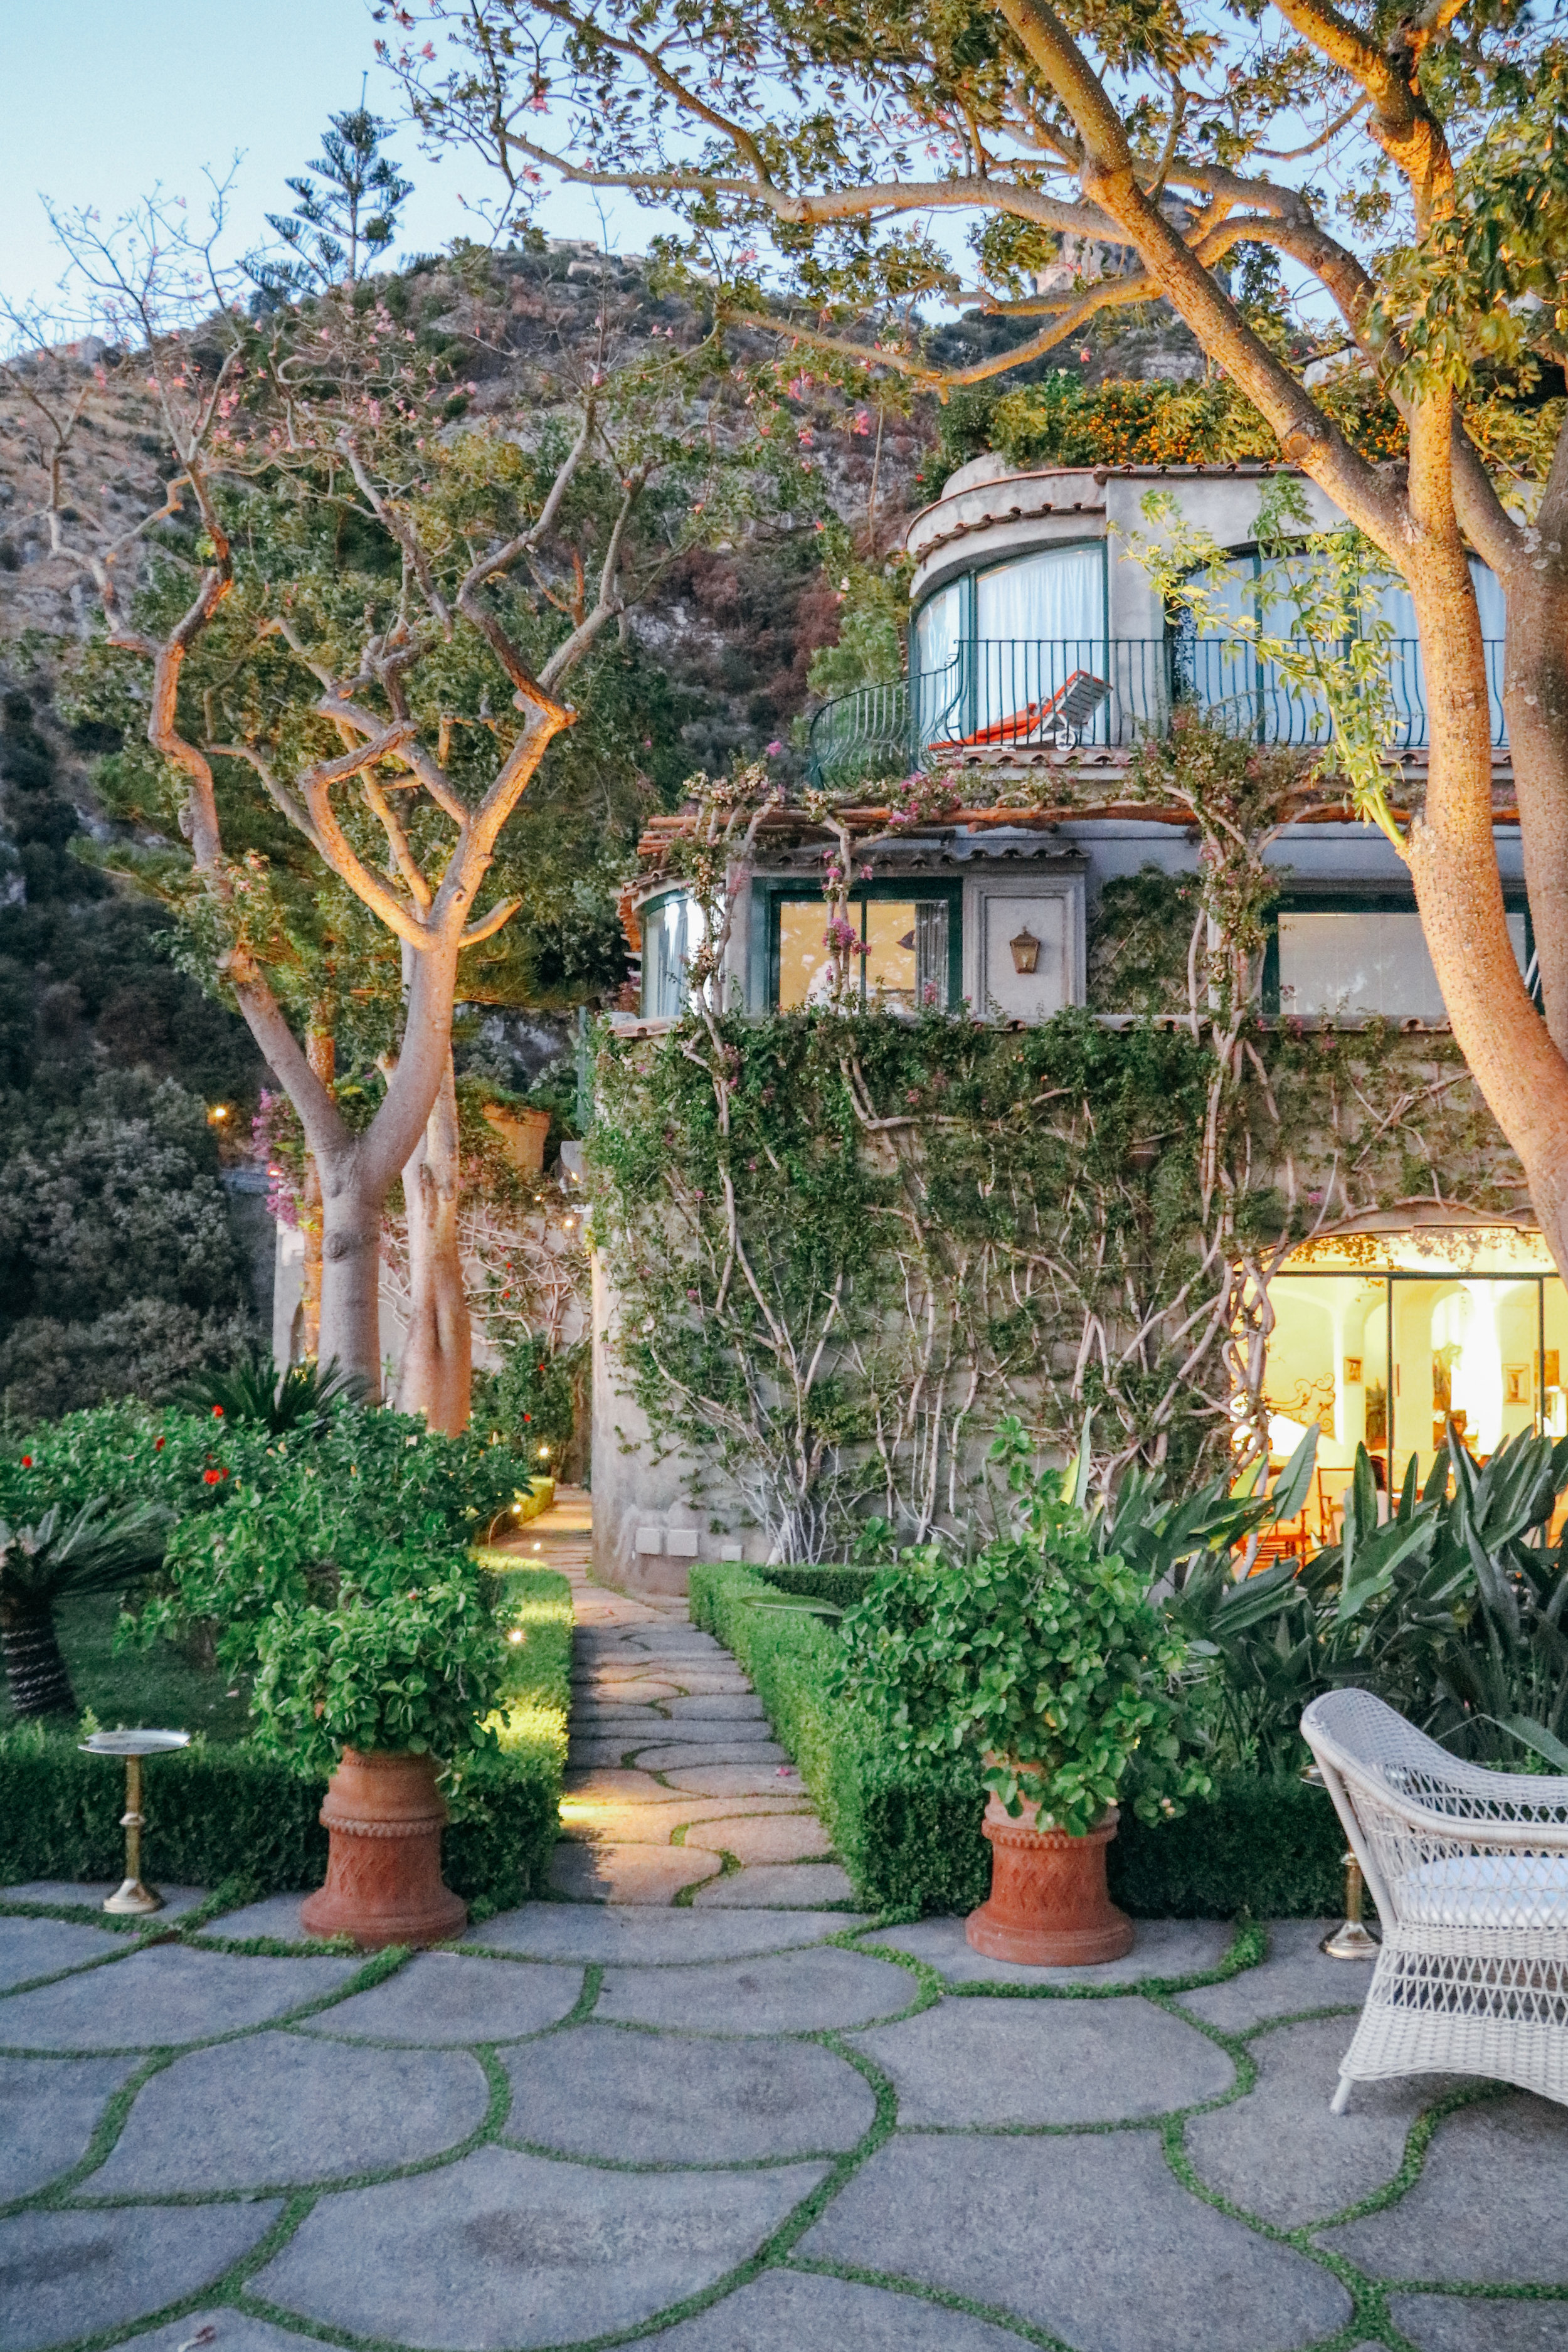 The Chic Traveler's Guide to Positano